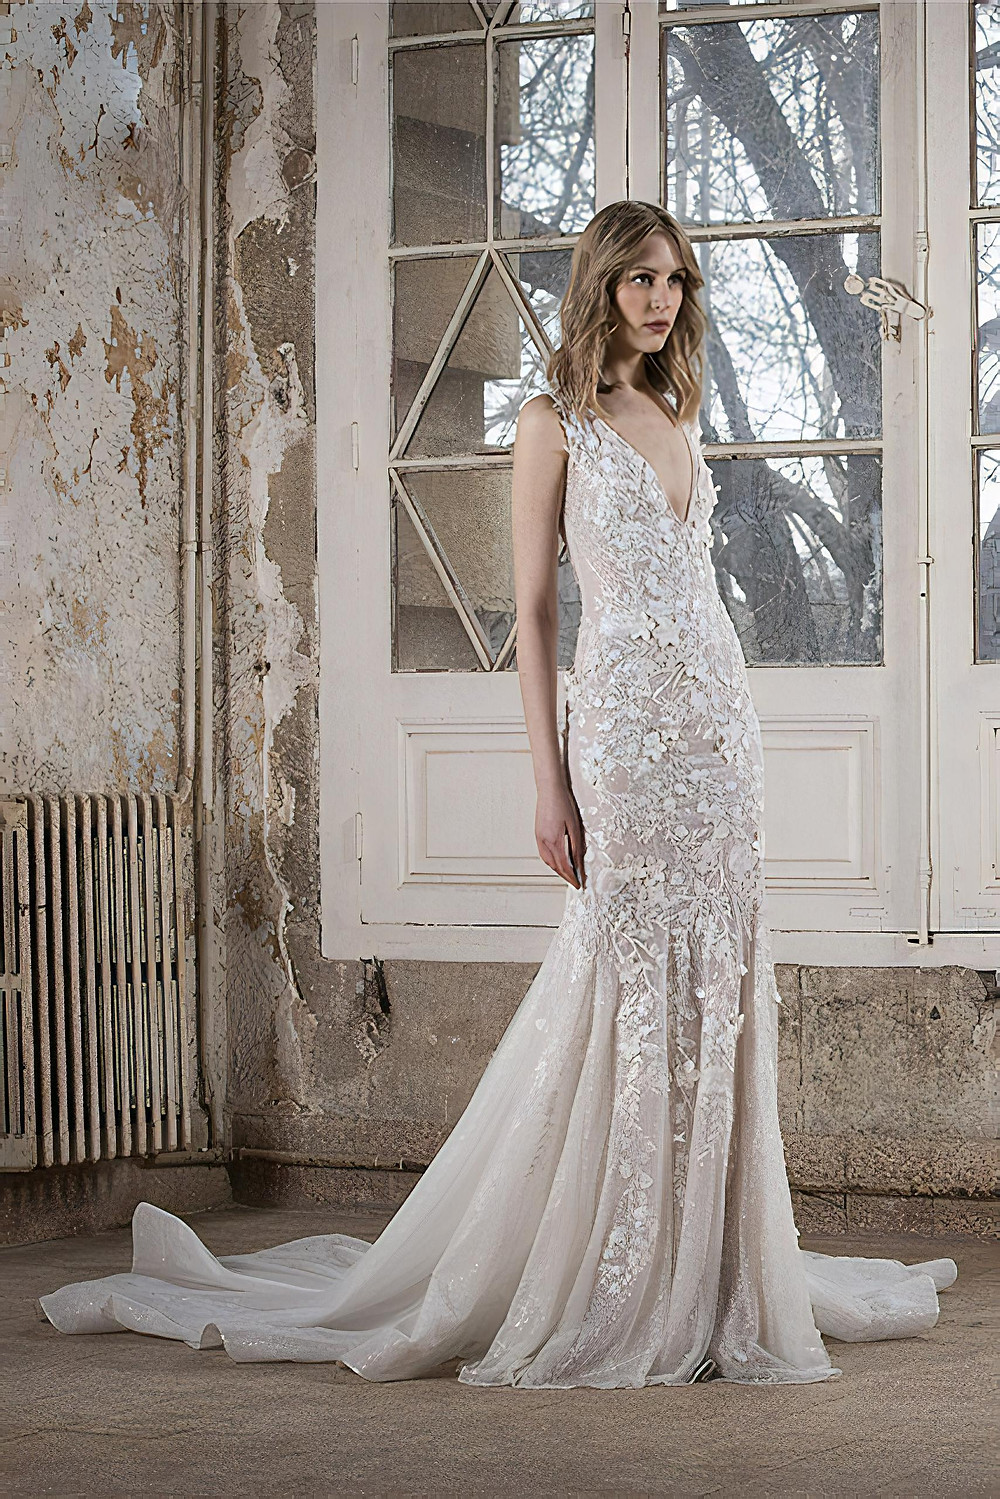 A fitted wedding gown with a deep-V, delicate floral embellishments and buttons detailing on the back